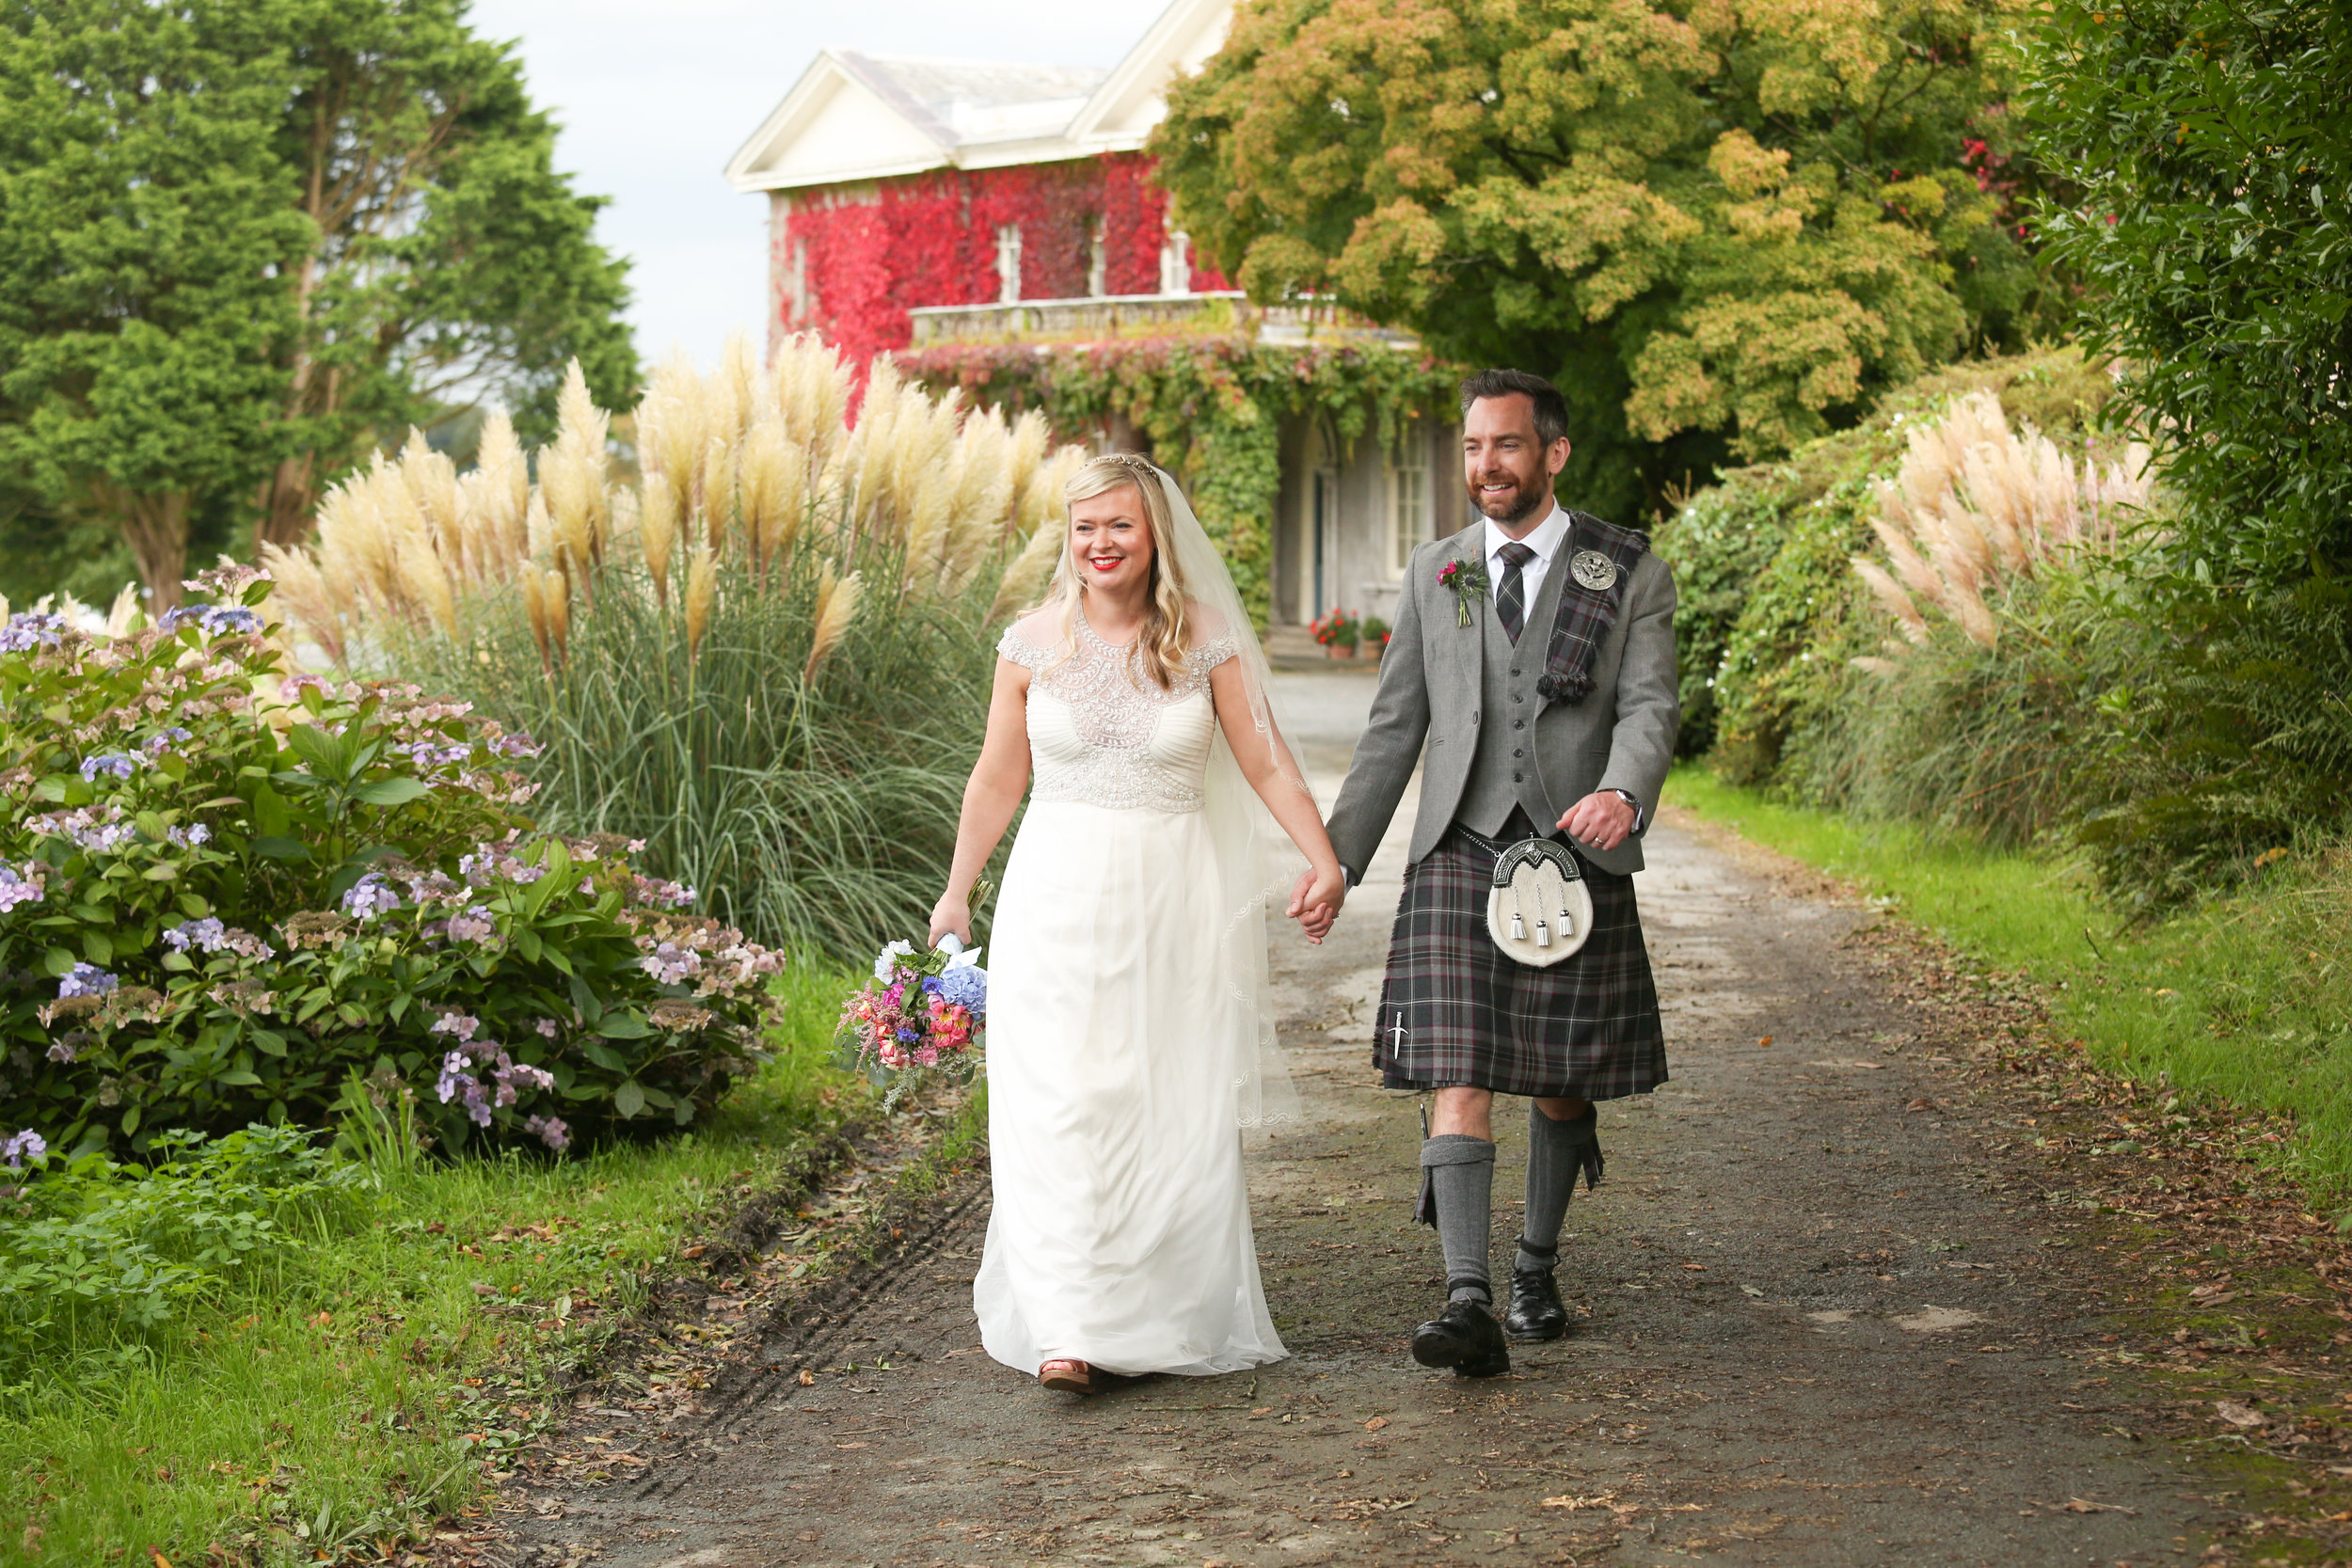 orlando-wedding-photographer-destination-wedding-scotland-castle-kilt.jpg